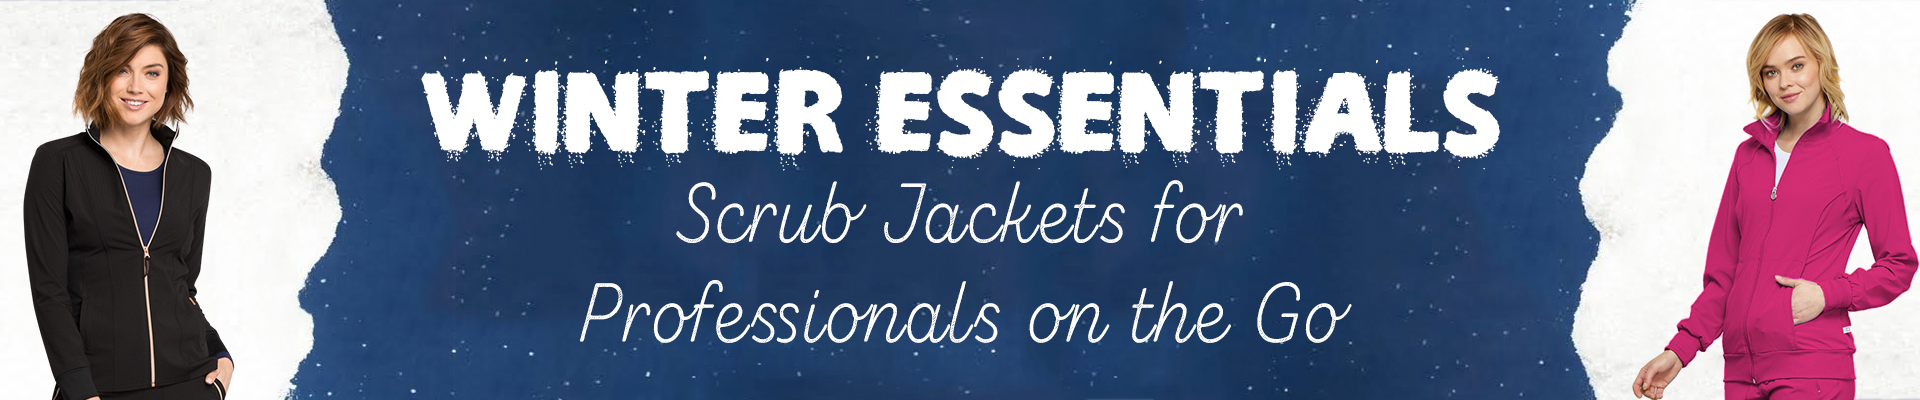 Winter Essentials - Scrub Jackets for Professionals on the Go